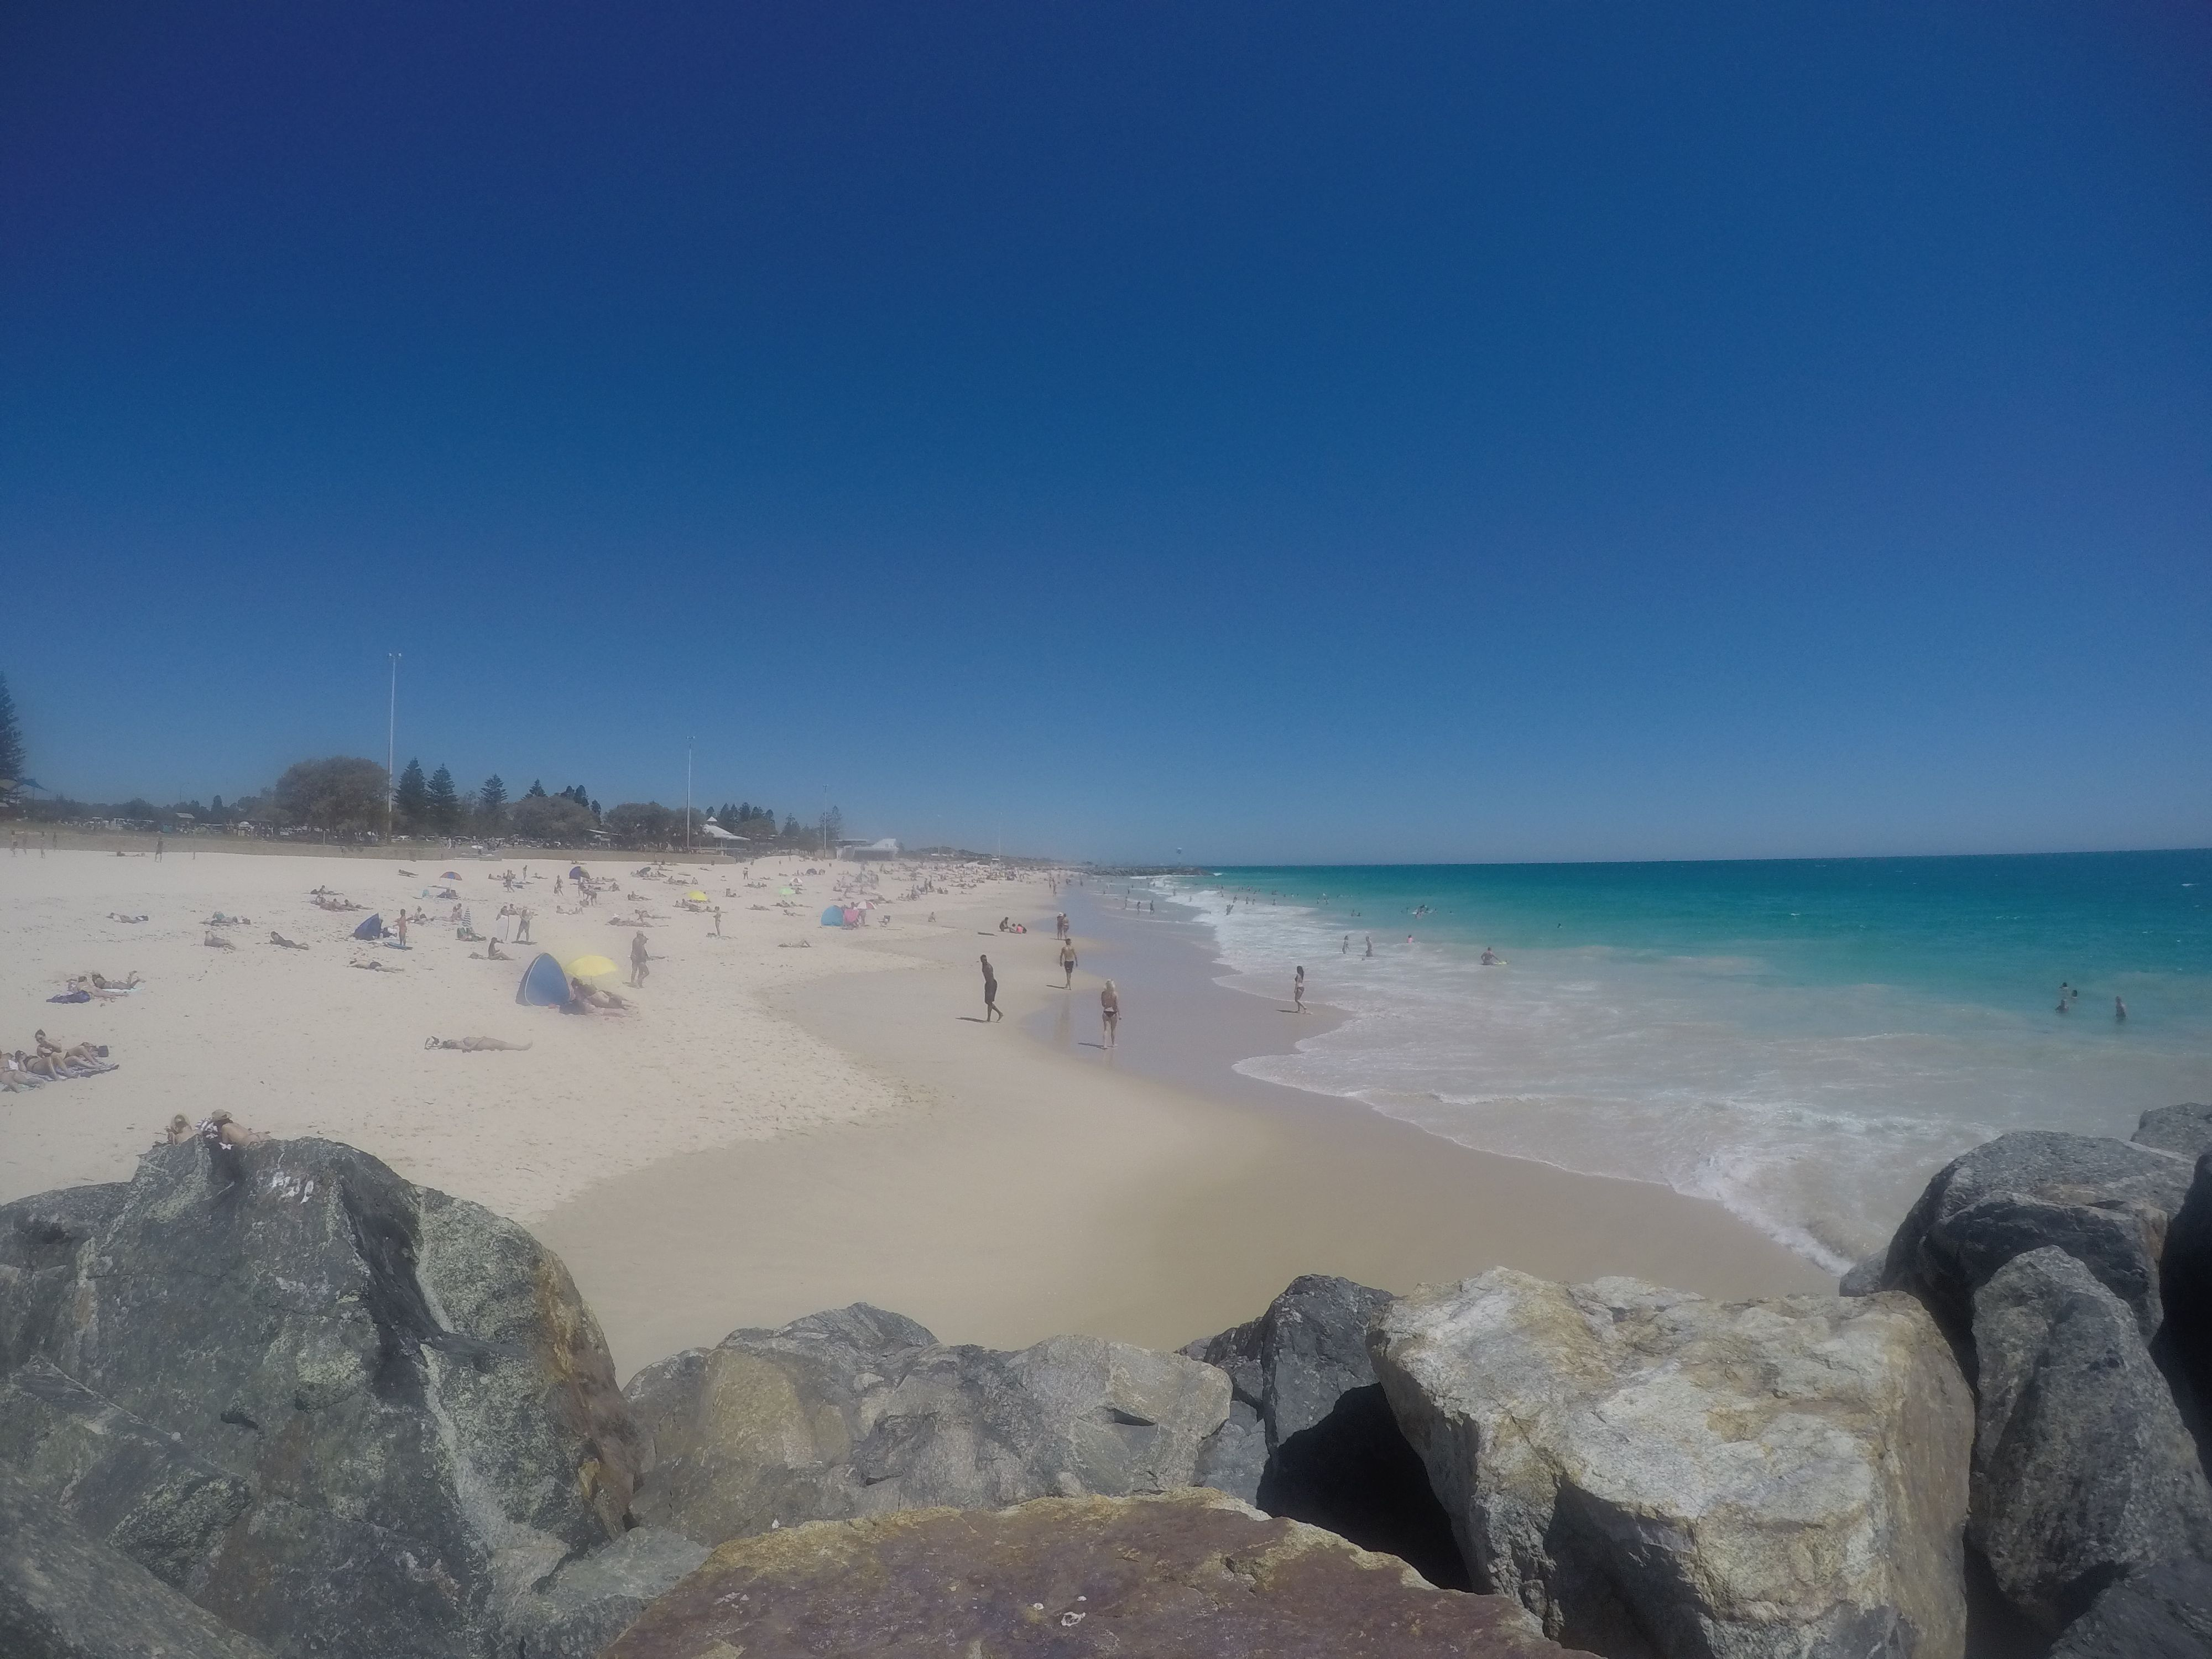 Soaking up the sun and catching waves at Floreat Beach. Today's forecast 37 and awesome.